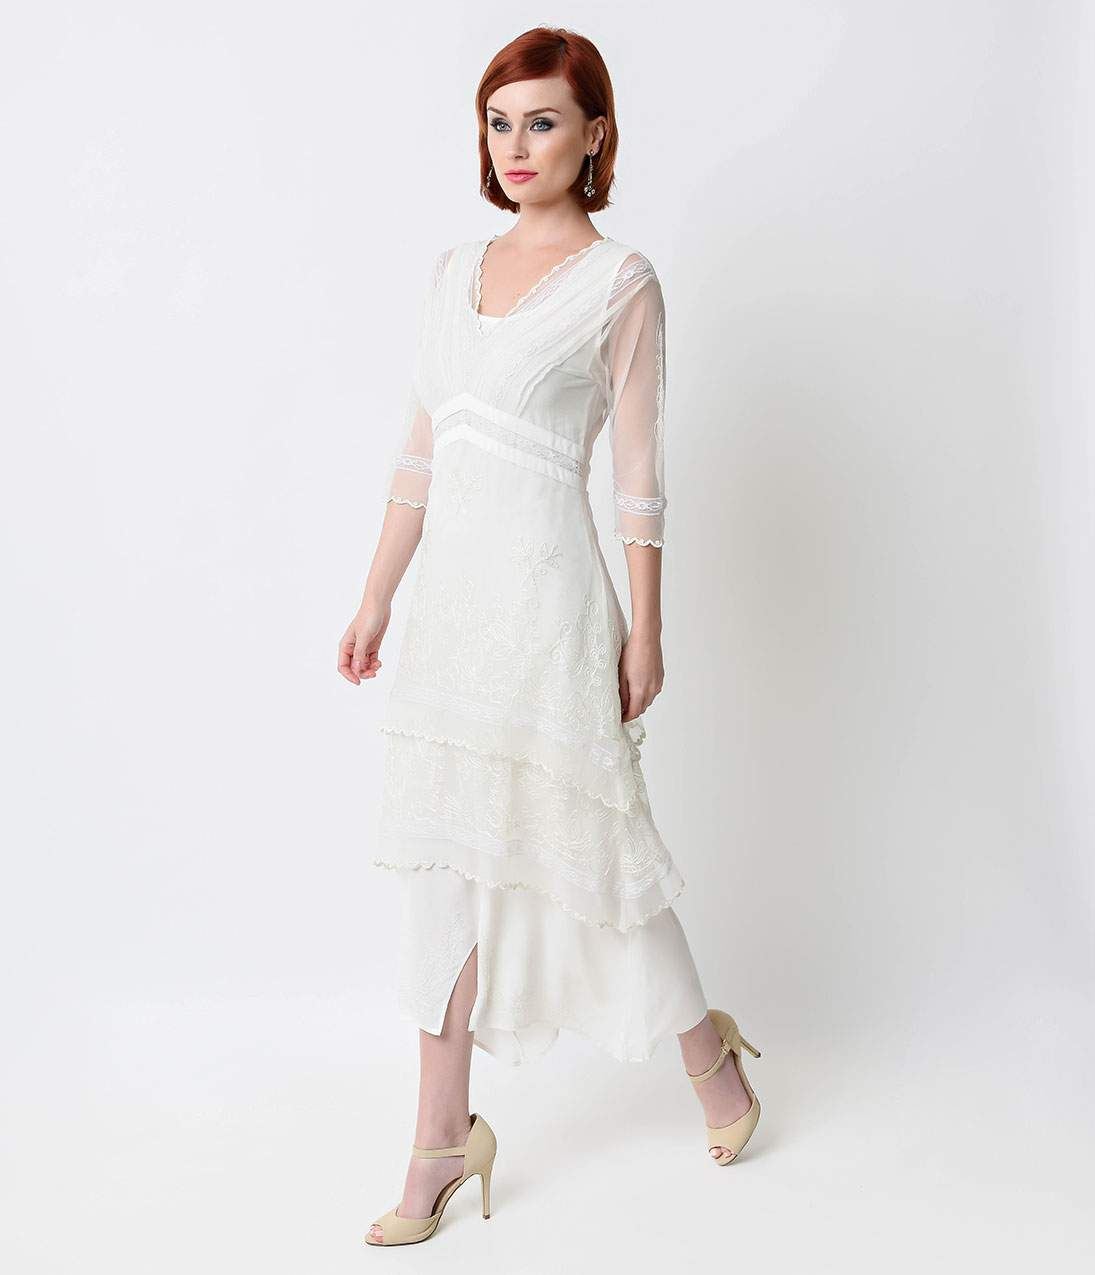 Victorian Edwardian Style Wedding Dresses, Shoes, Accessories Nataya 1930s White Embroidered Titanic Tulle Tea Length Dress $212.00 AT vintagedancer.com